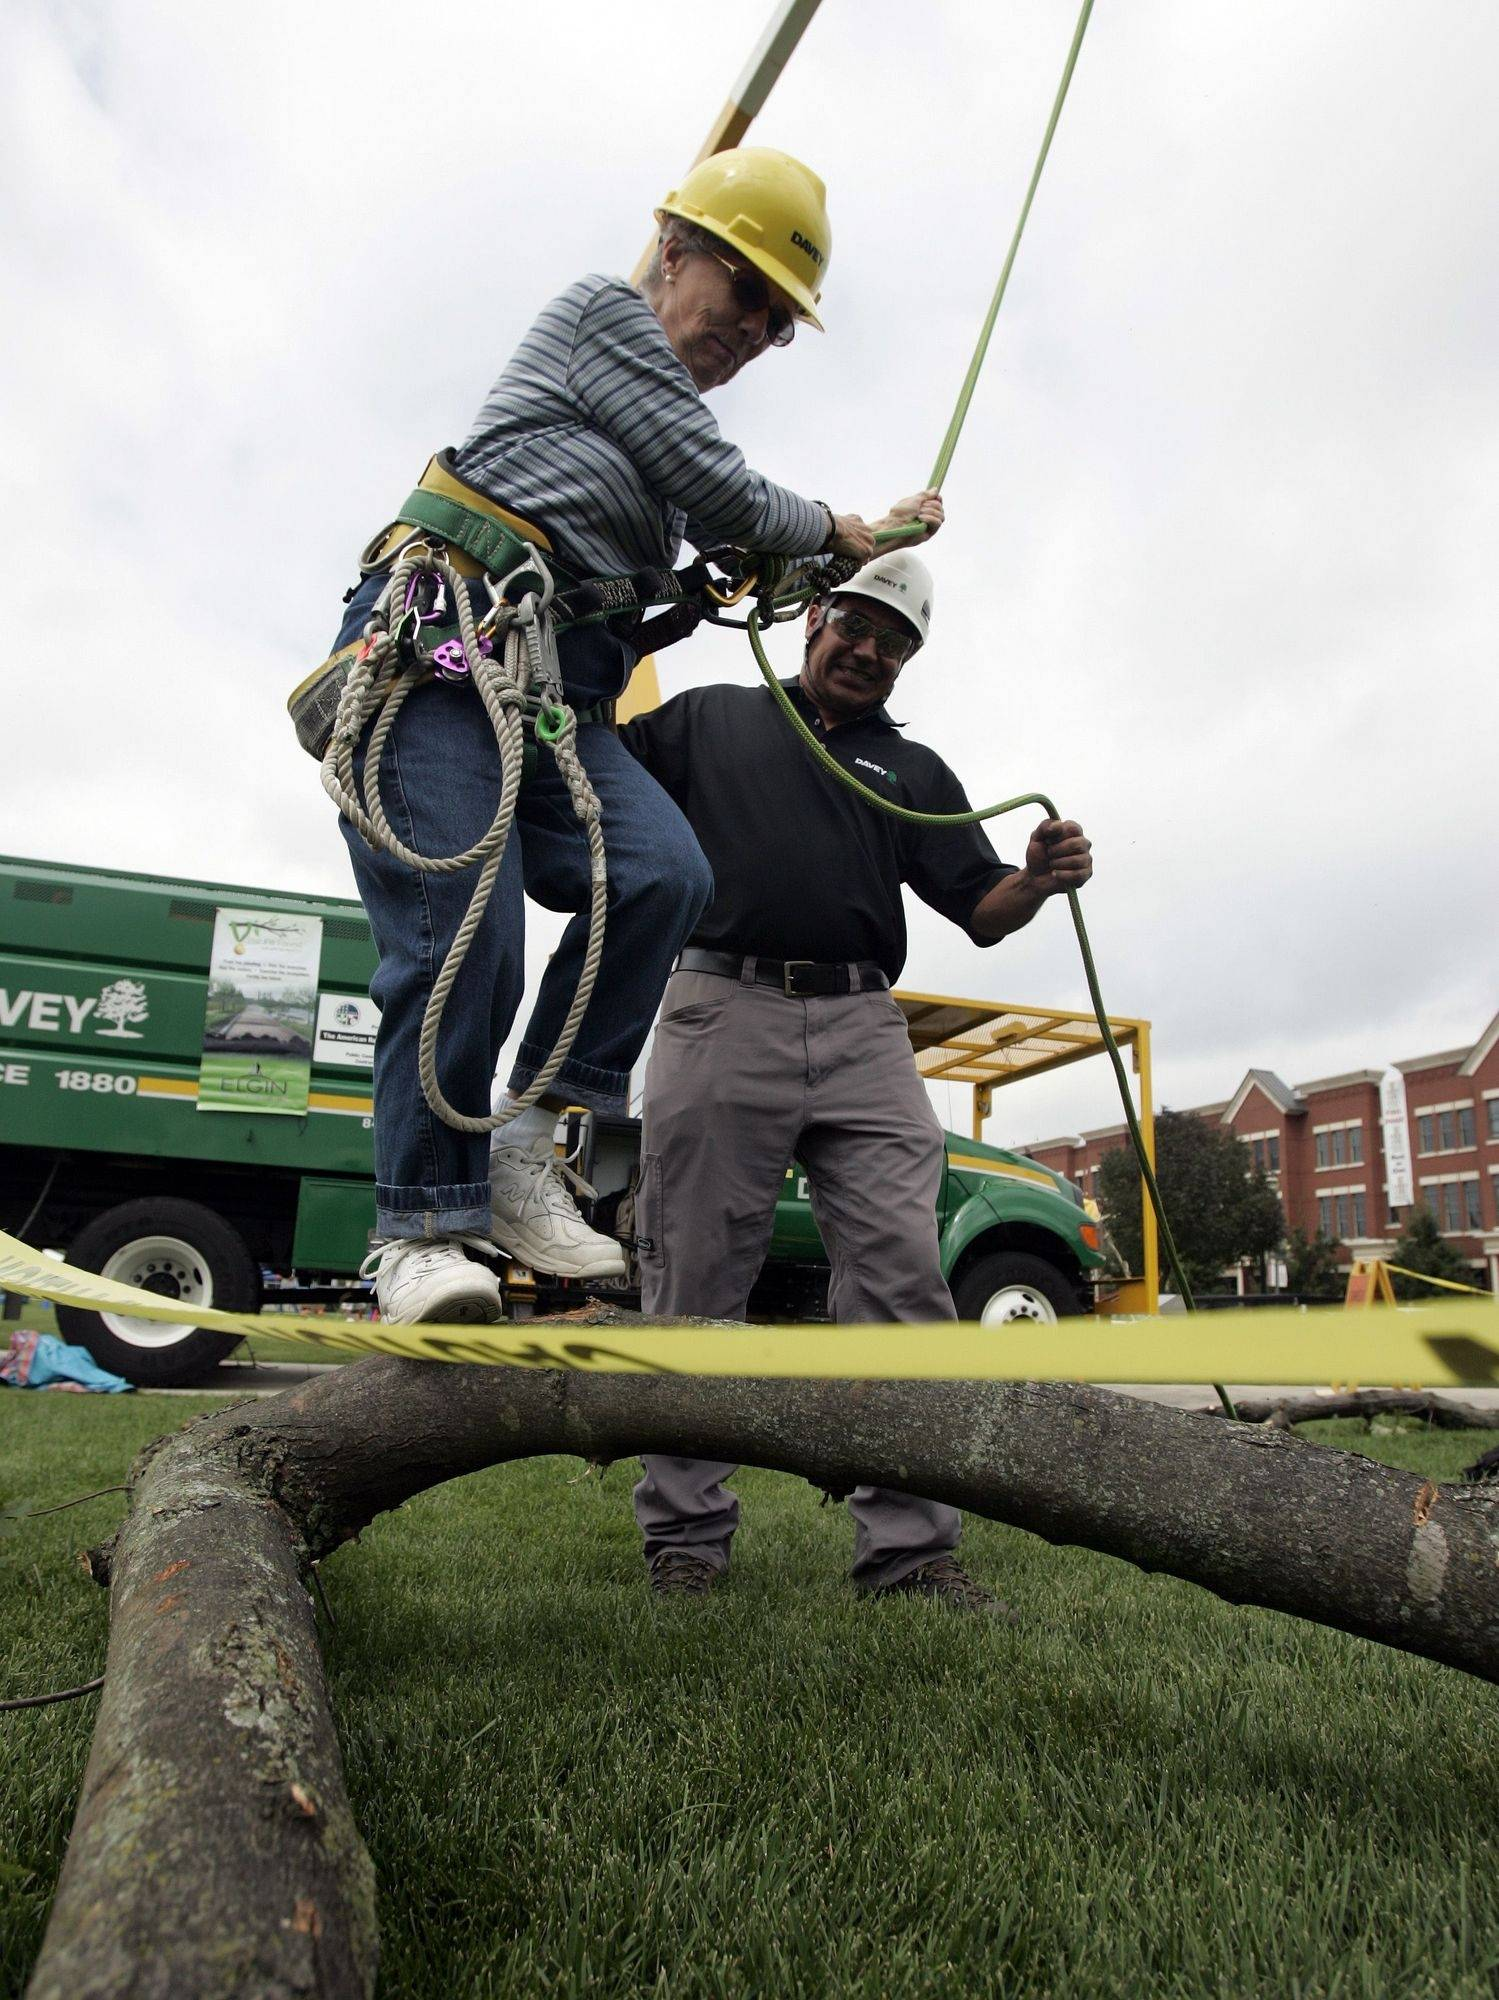 Joyce Hopper of Elgin gets a helping hand form Miguel Alvarez of Davey Tree as she tries to stay upright on a tree limb. There were also music, games, food and fun at Elgin's Largest Block Party at Festival Park Elgin Saturday, September 11.